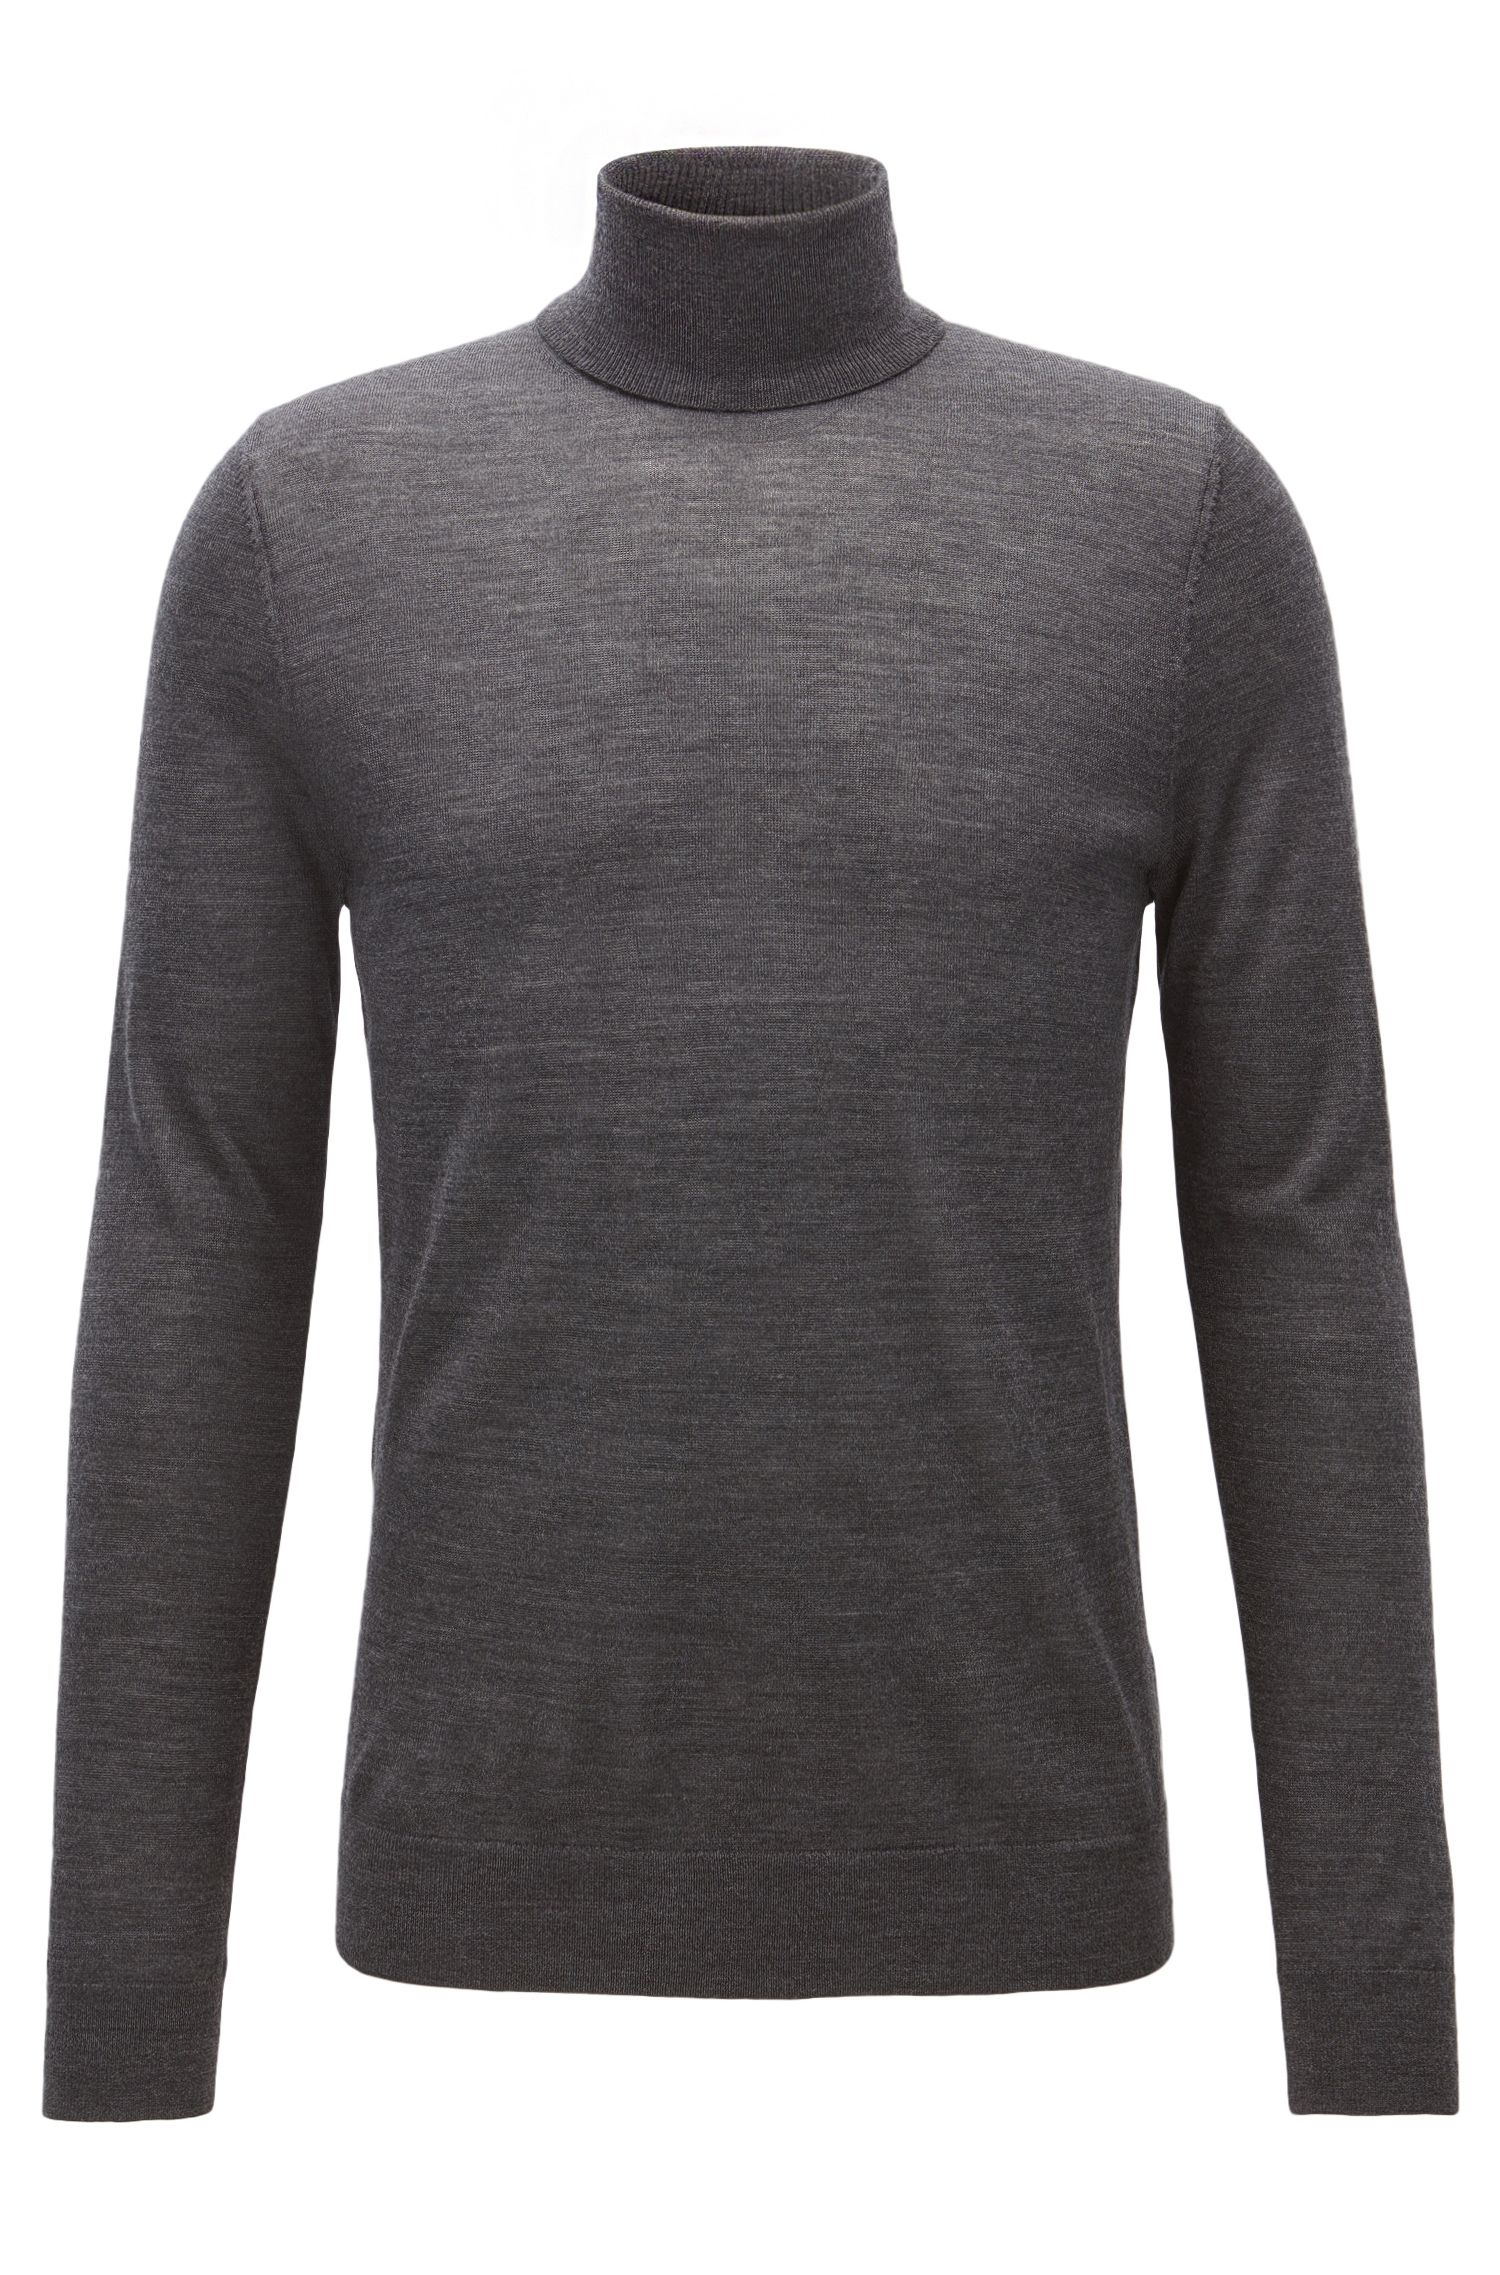 Turtle-neck sweater in a Merino wool blend